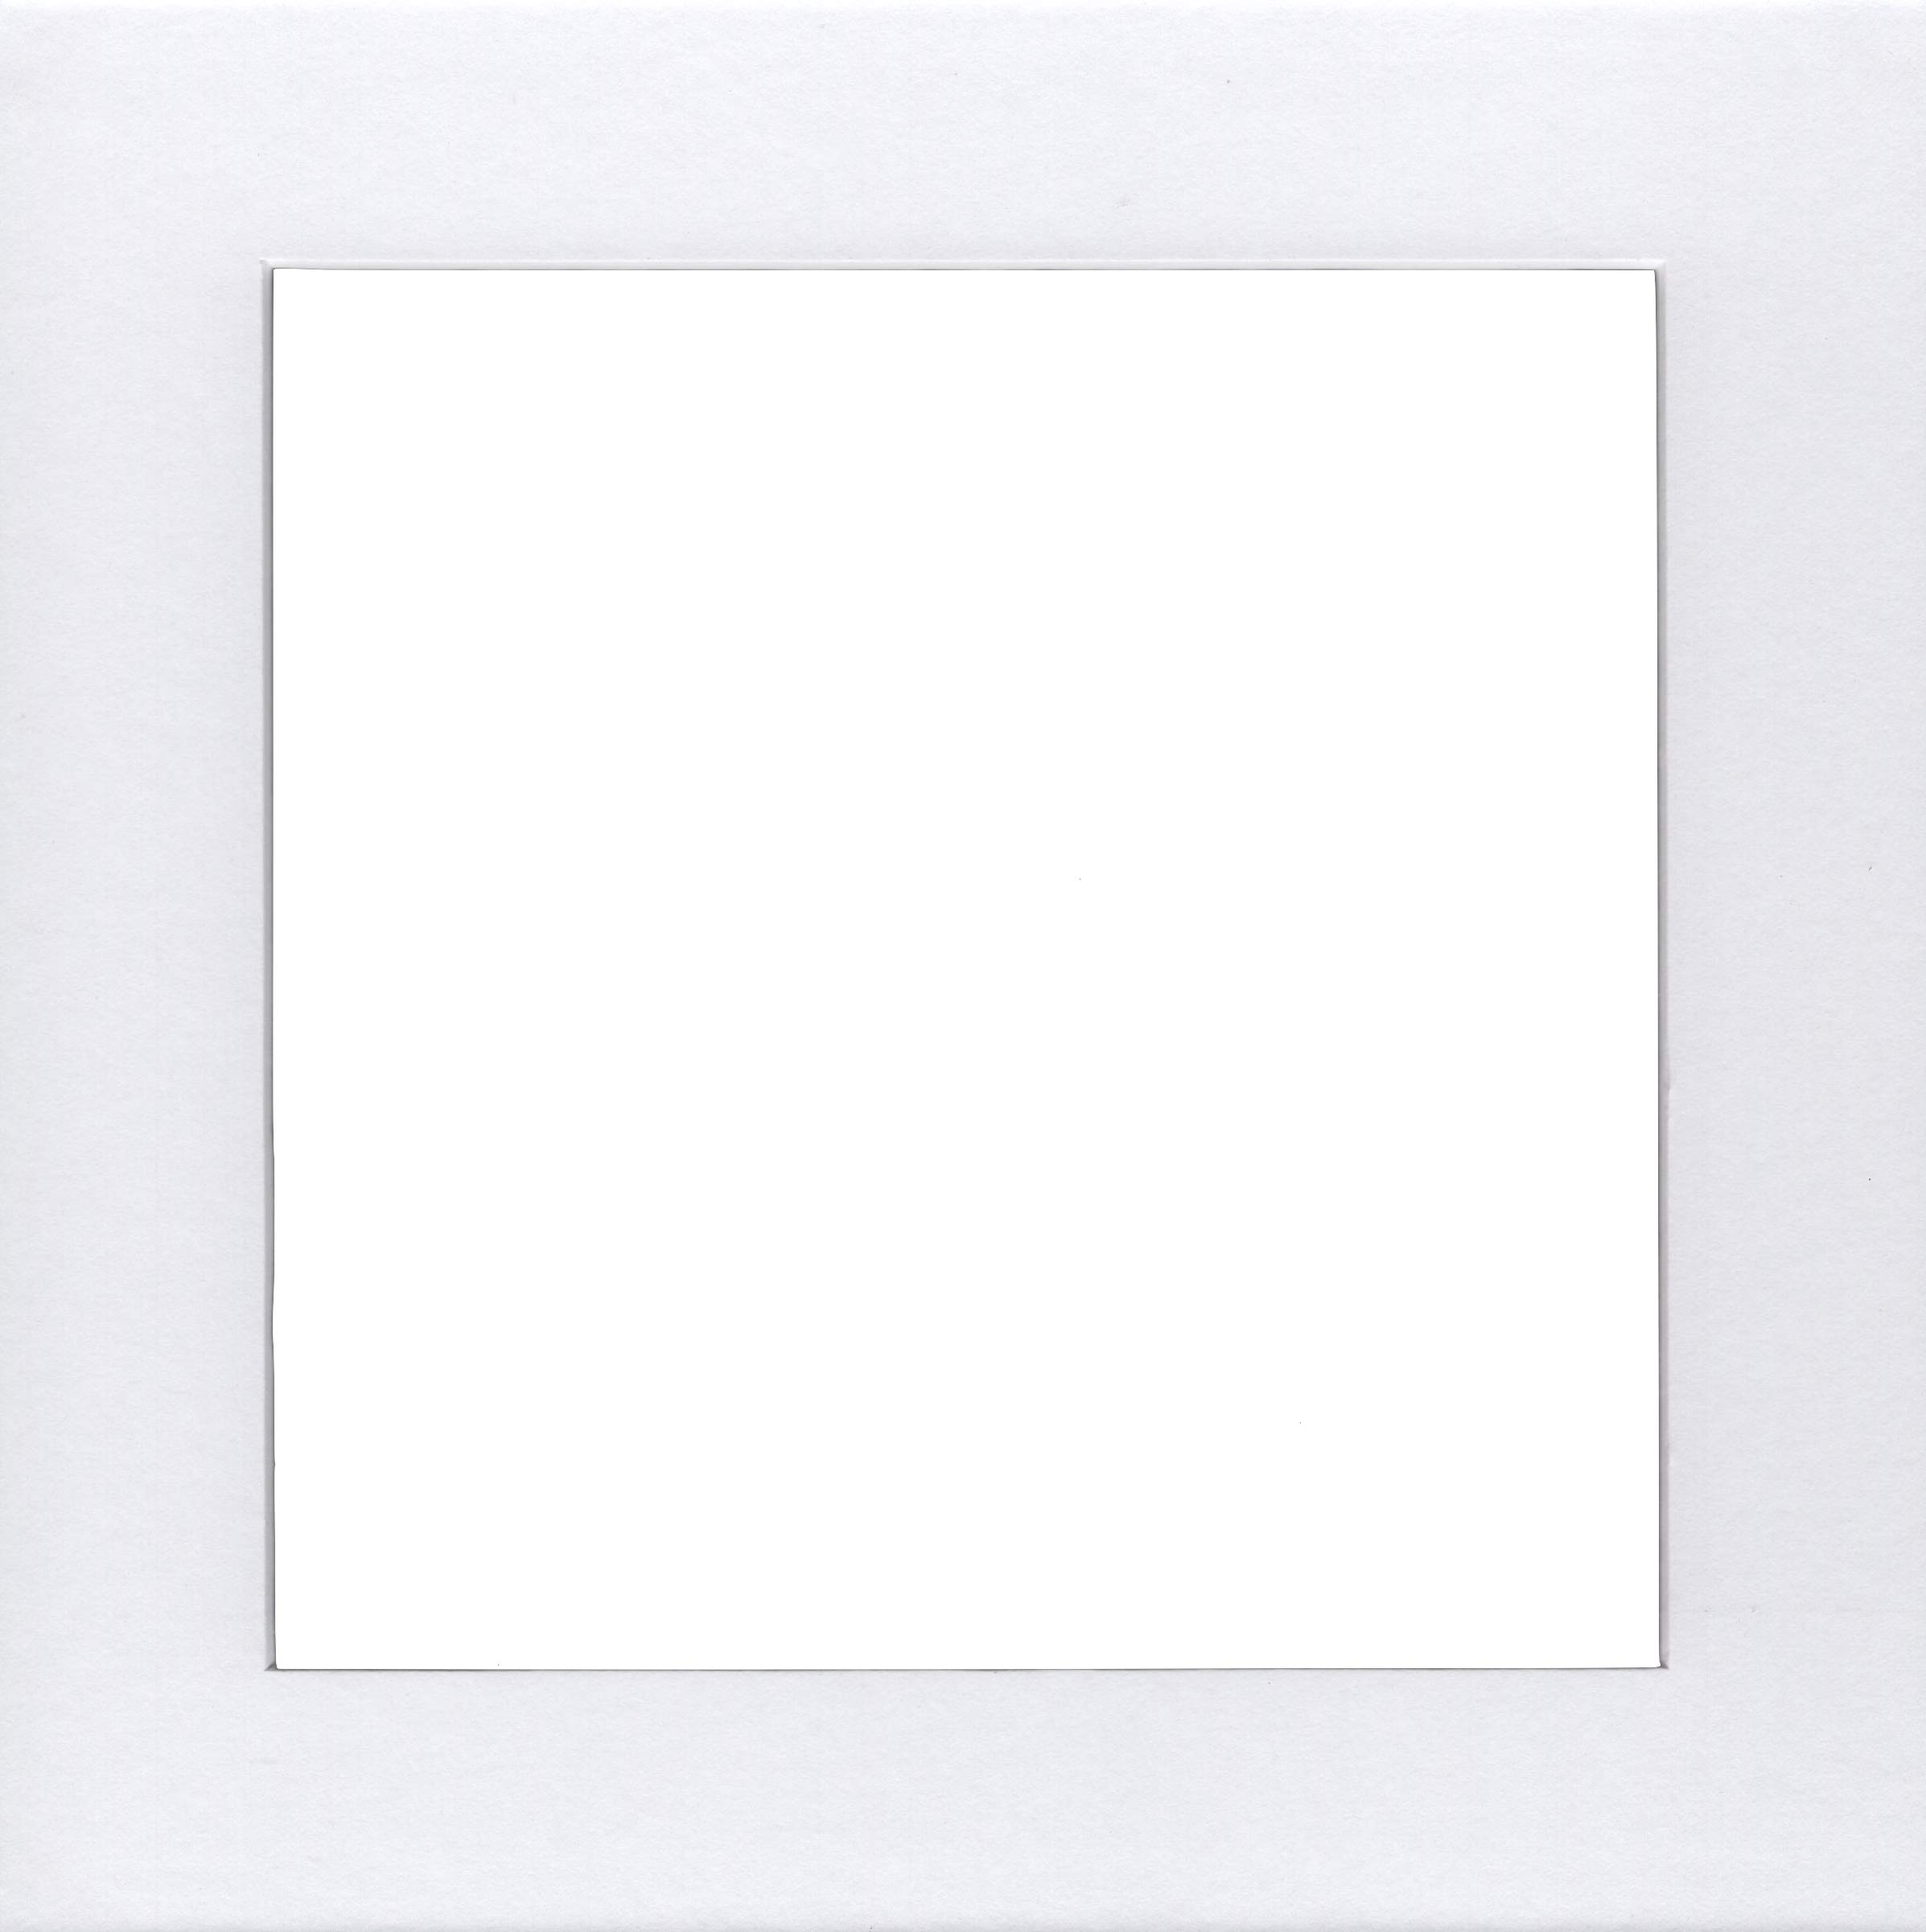 Pack of 5 16x16 Square White Picture Mats with White Core Bevel Cut for 12x12 Pictures by bux1 picture matting